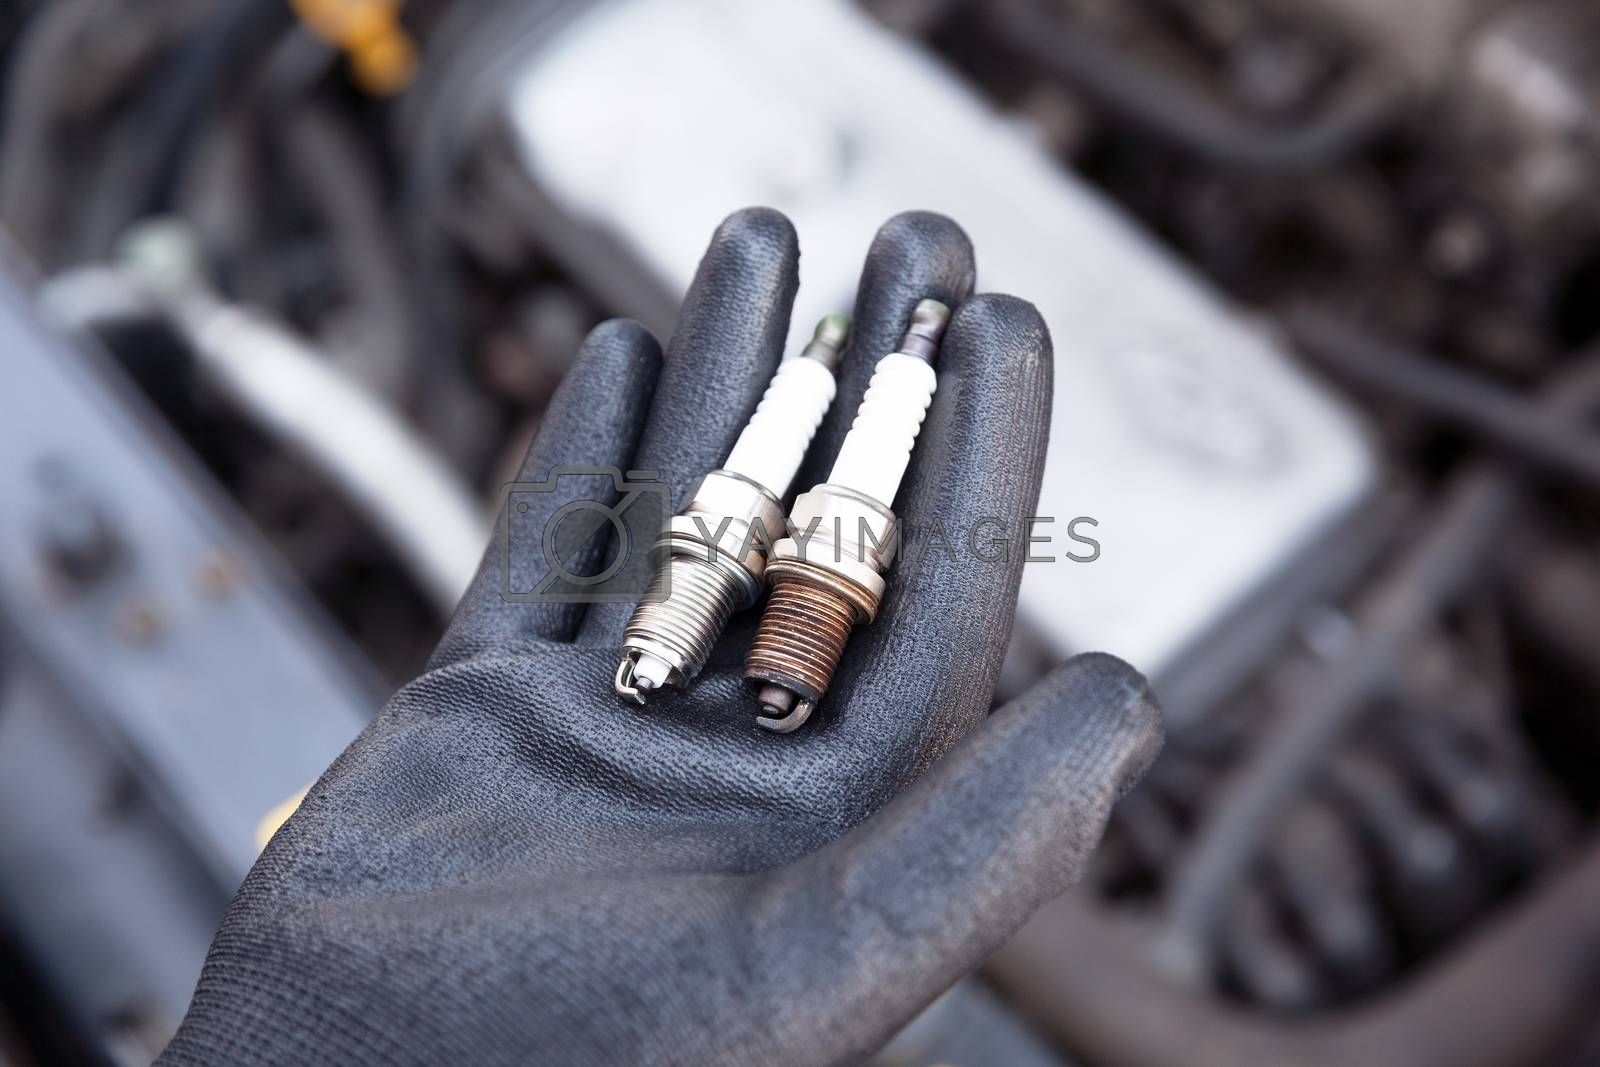 Auto mechanic wearing protective work glove holds old and new spark plugs over a car engine